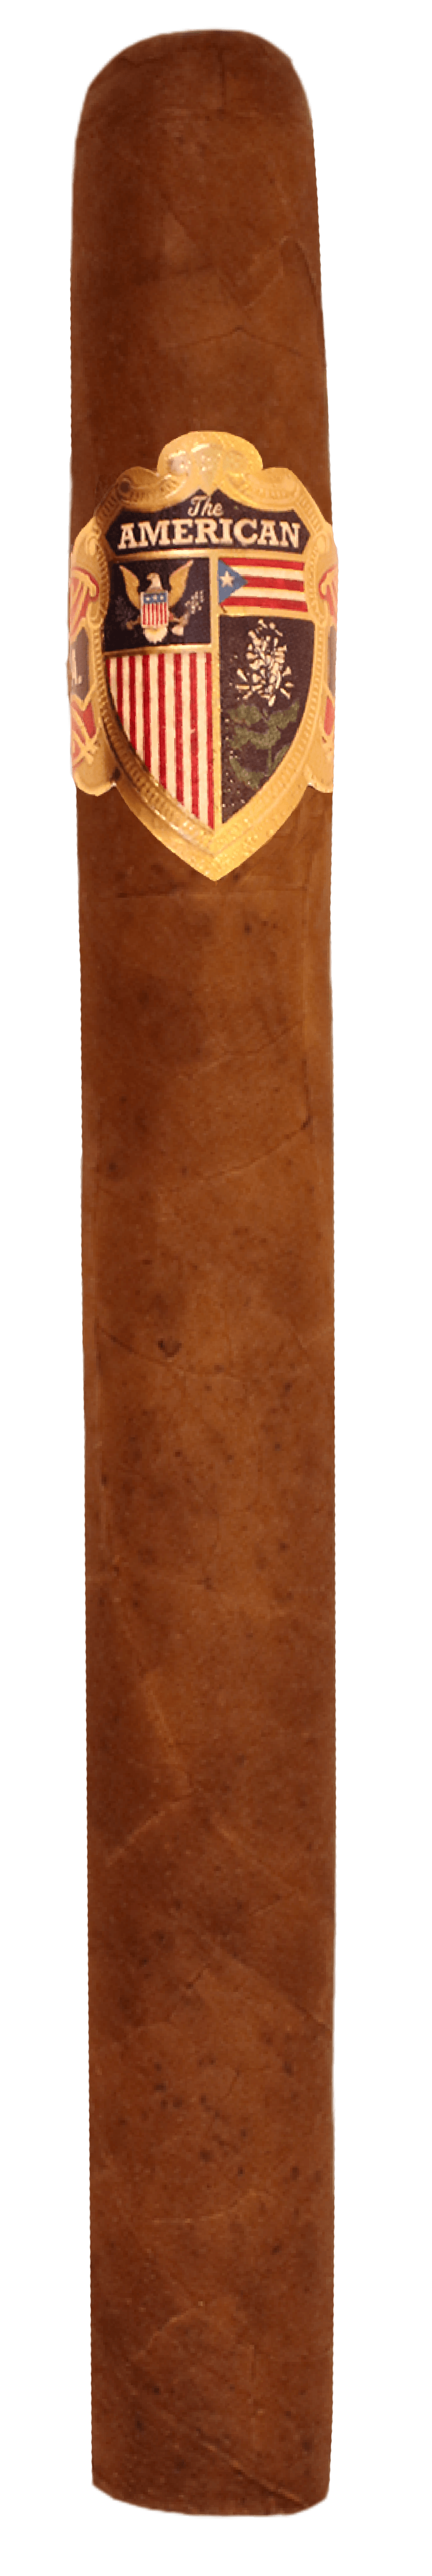 The American Cigar Churchill Single